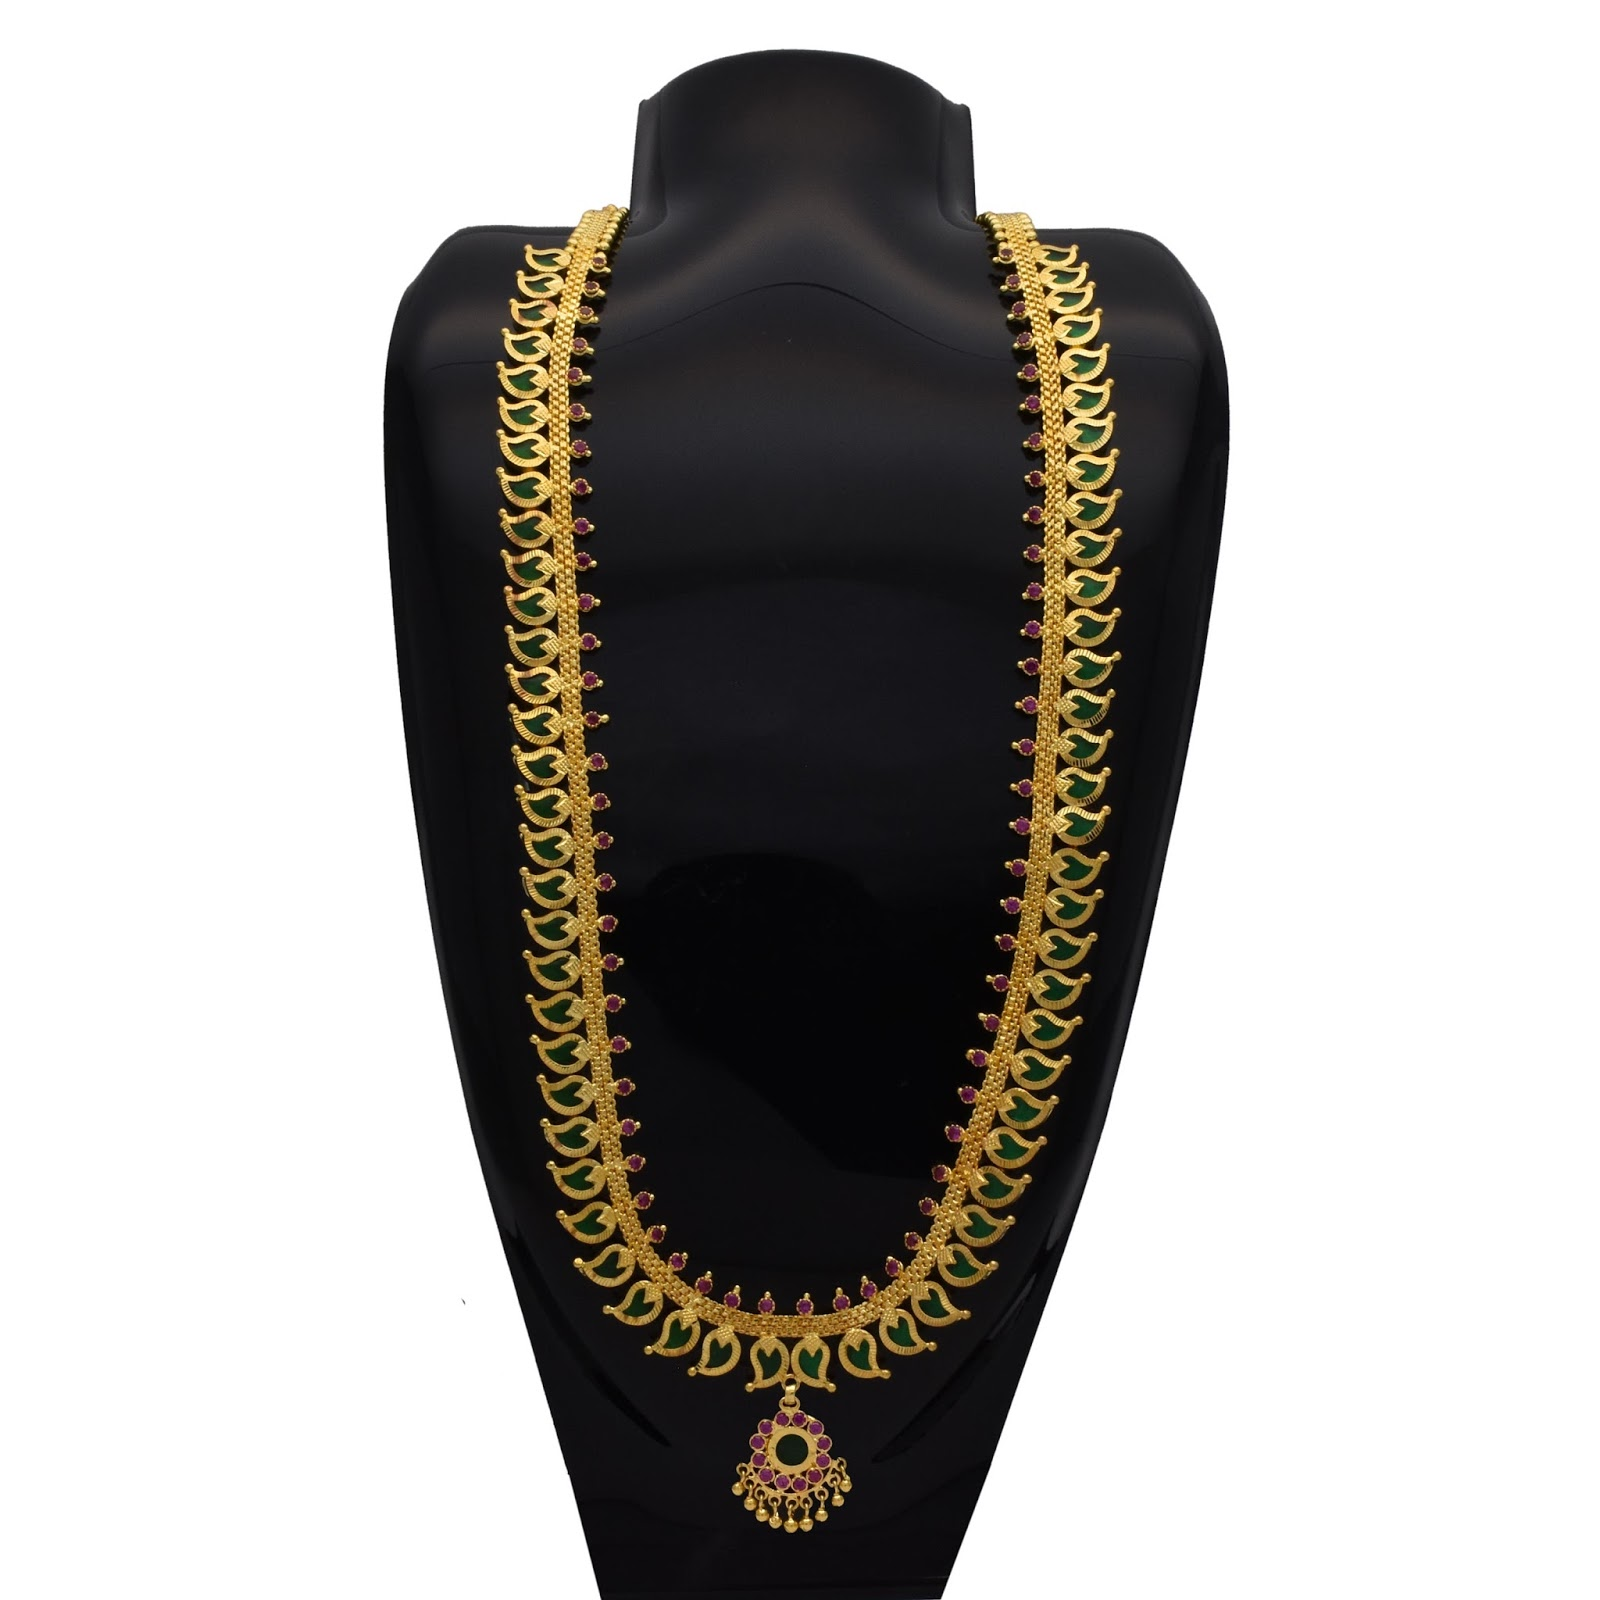 Kollam Supreme Premium Fashion Jewellery: Buy Traditional Green